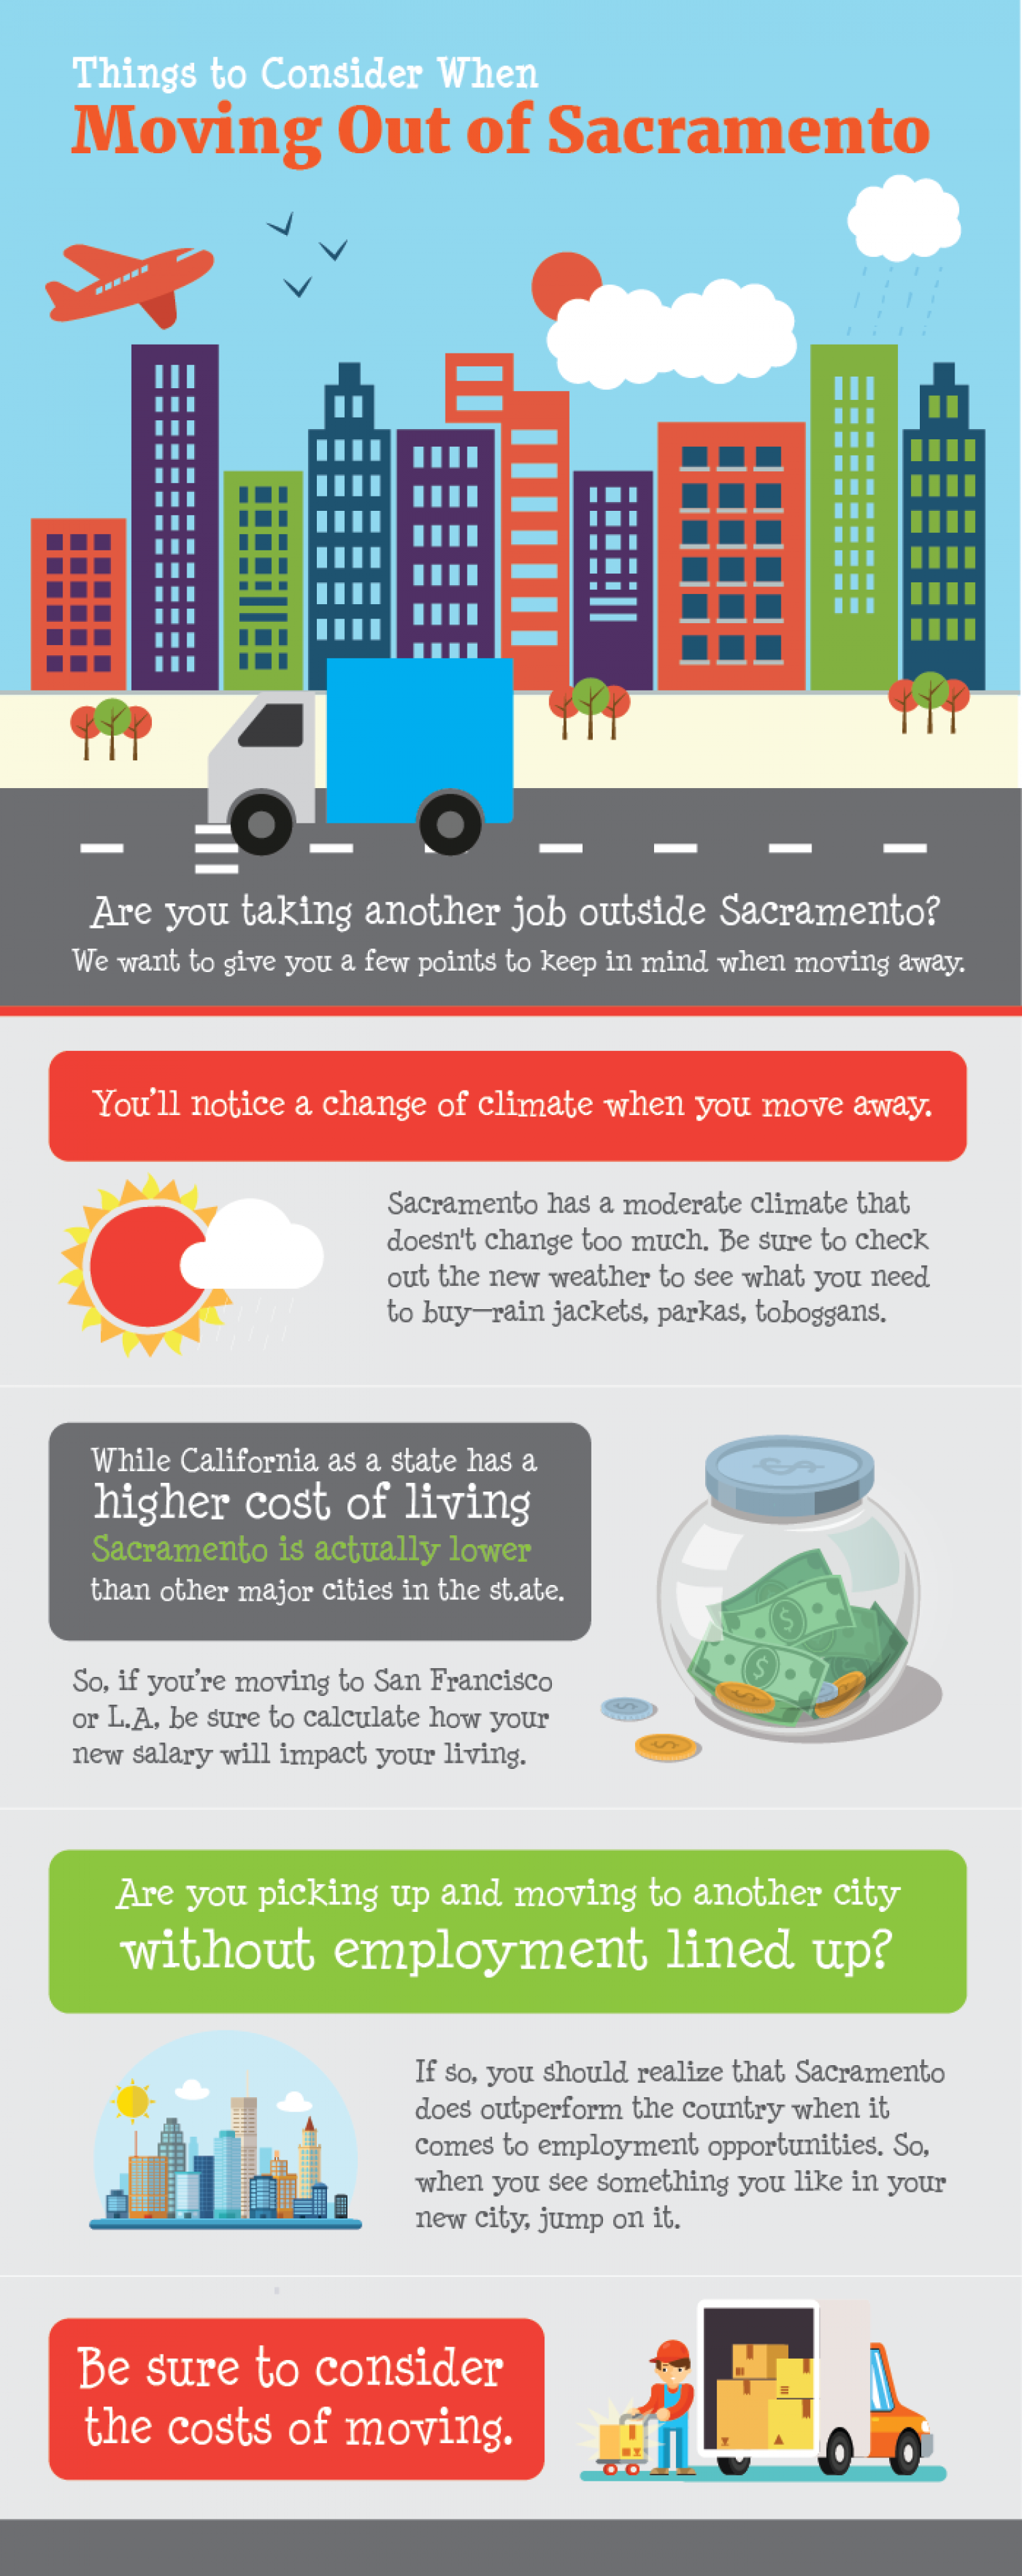 Things to Consider When Moving Out of Sacramento Infographic